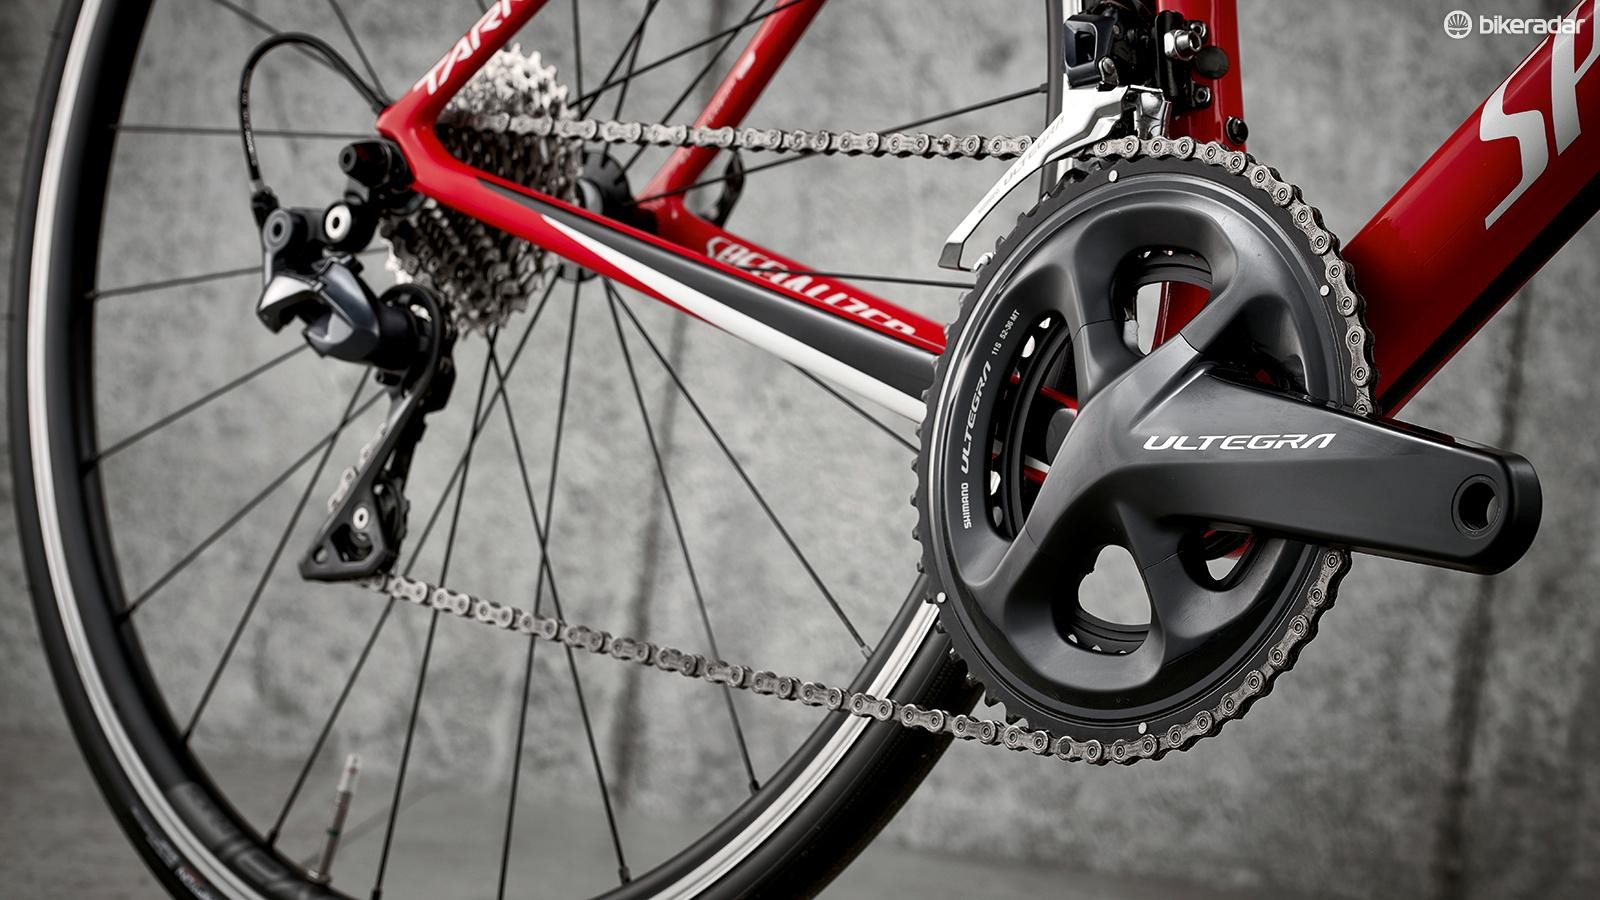 The Shimano Ultegra groupset runs a 52/36 and 11-28 combination